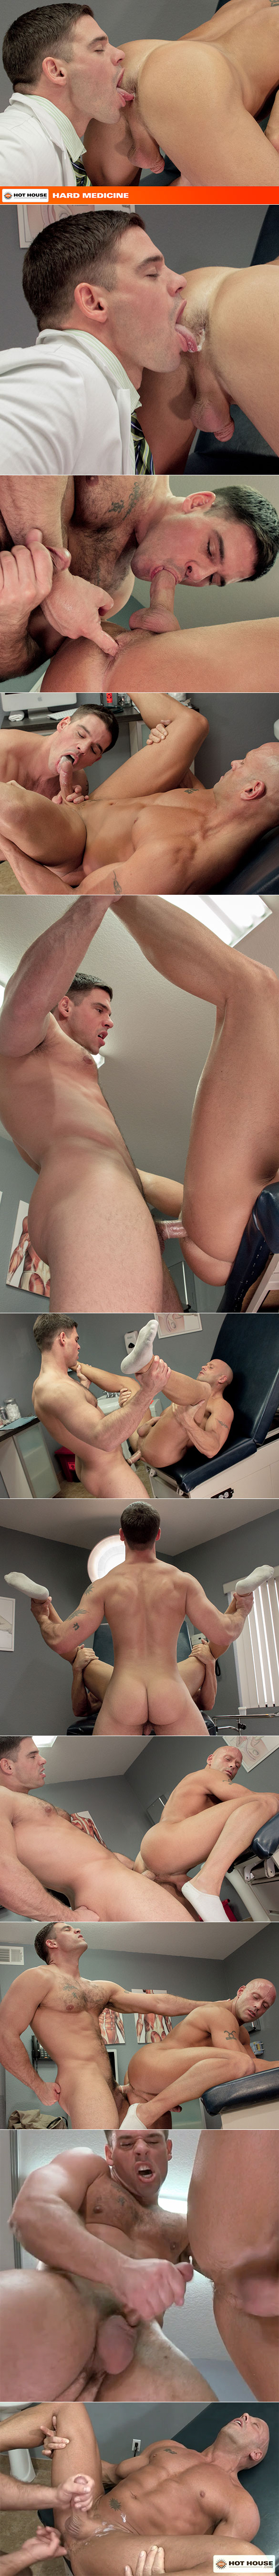 "HotHouse: Derek Atlas fucks Coby Mitchell in ""Hard Medicine"""